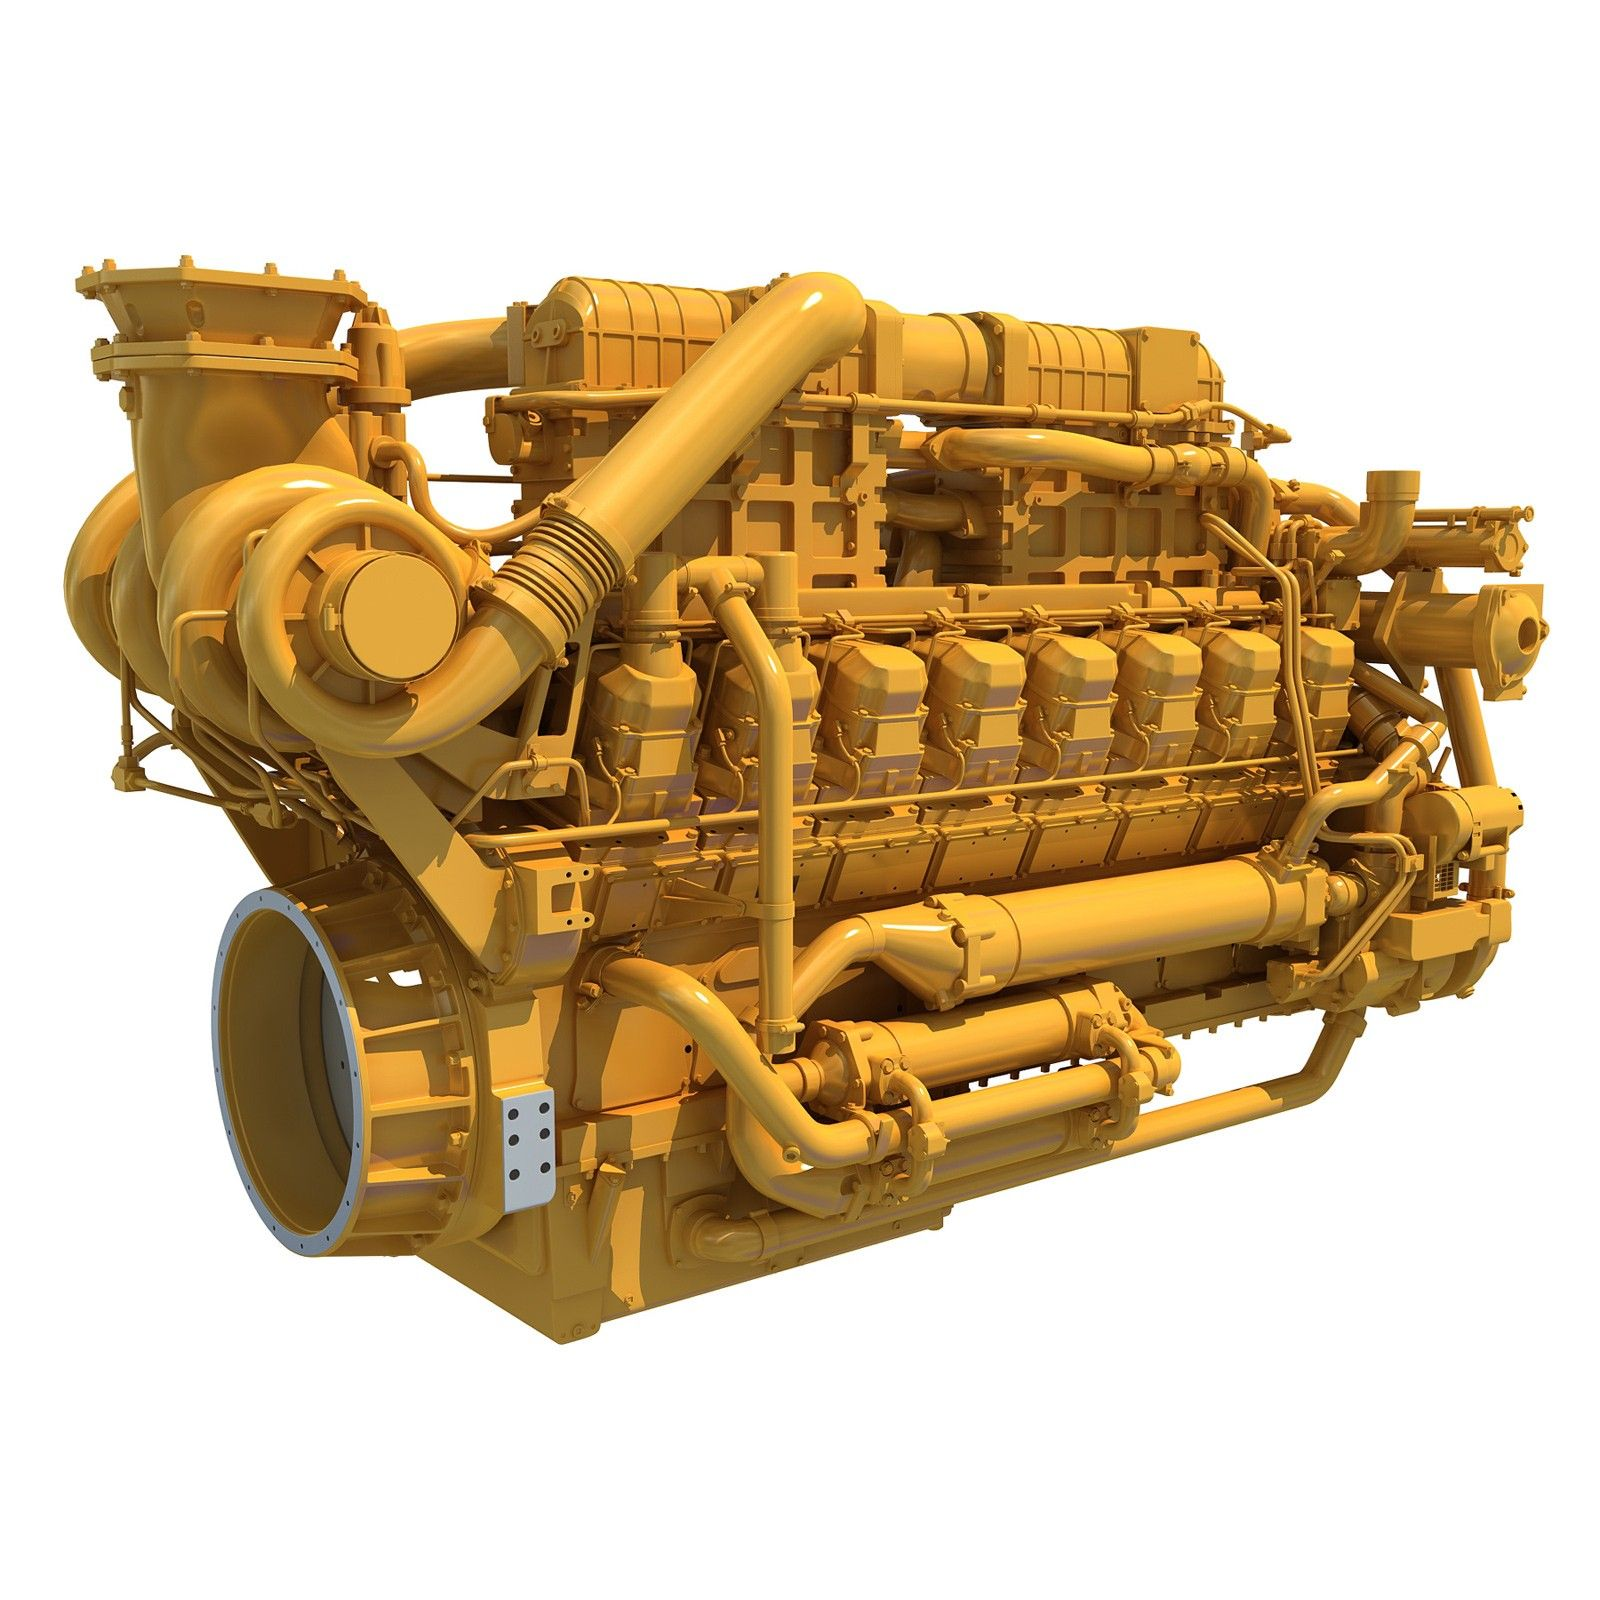 2017 Caterpillar Marine Propulsion Engine 3D Model #Caterpillar  #MarineEngine #3DModel